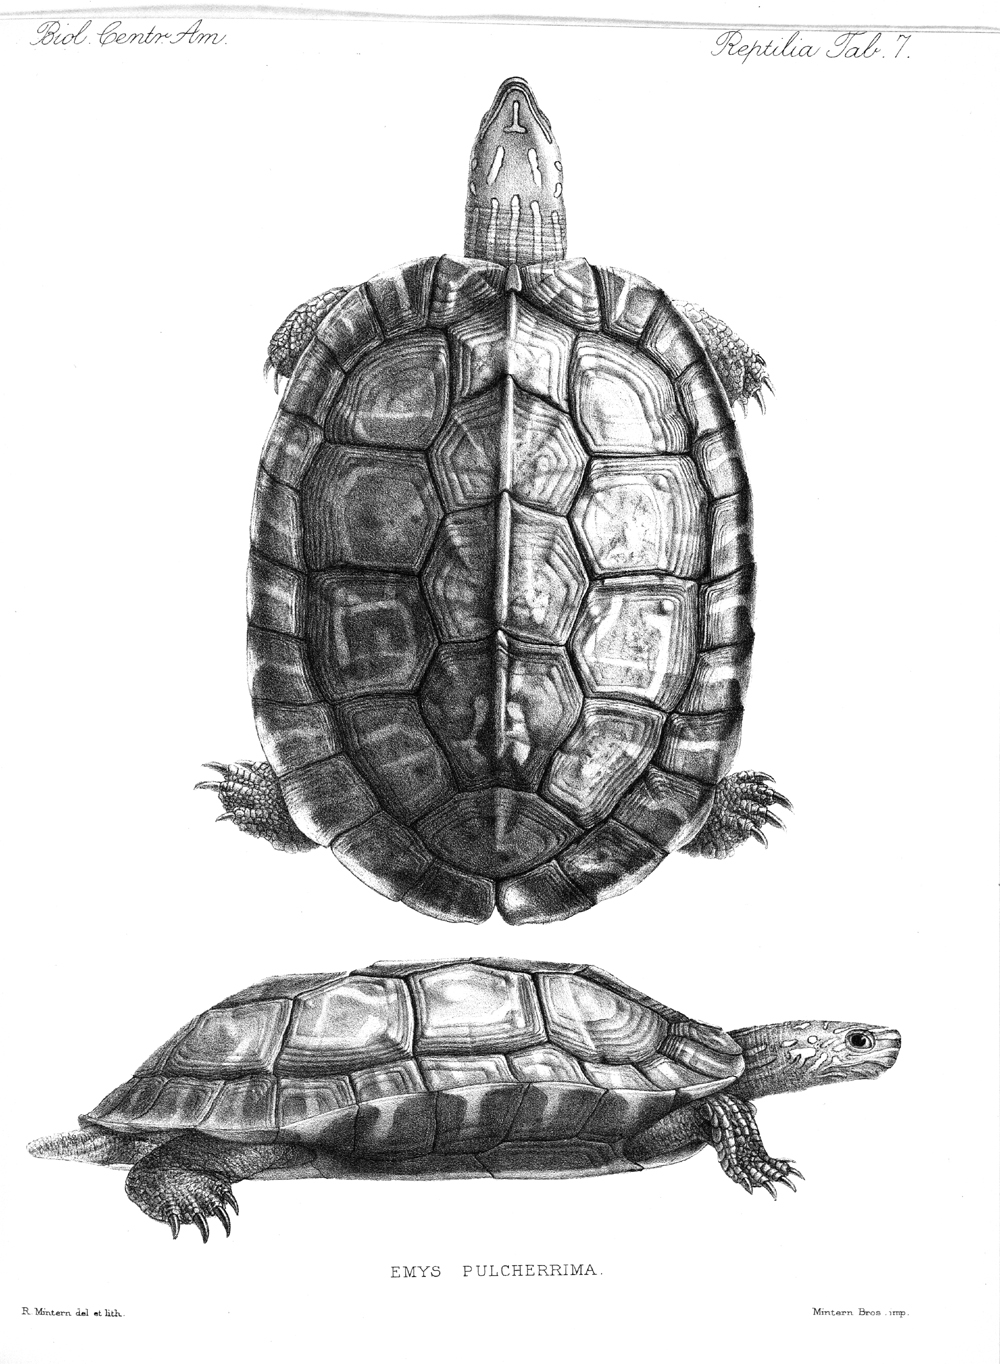 Turtles,  Image number:bca_04_00_00_357